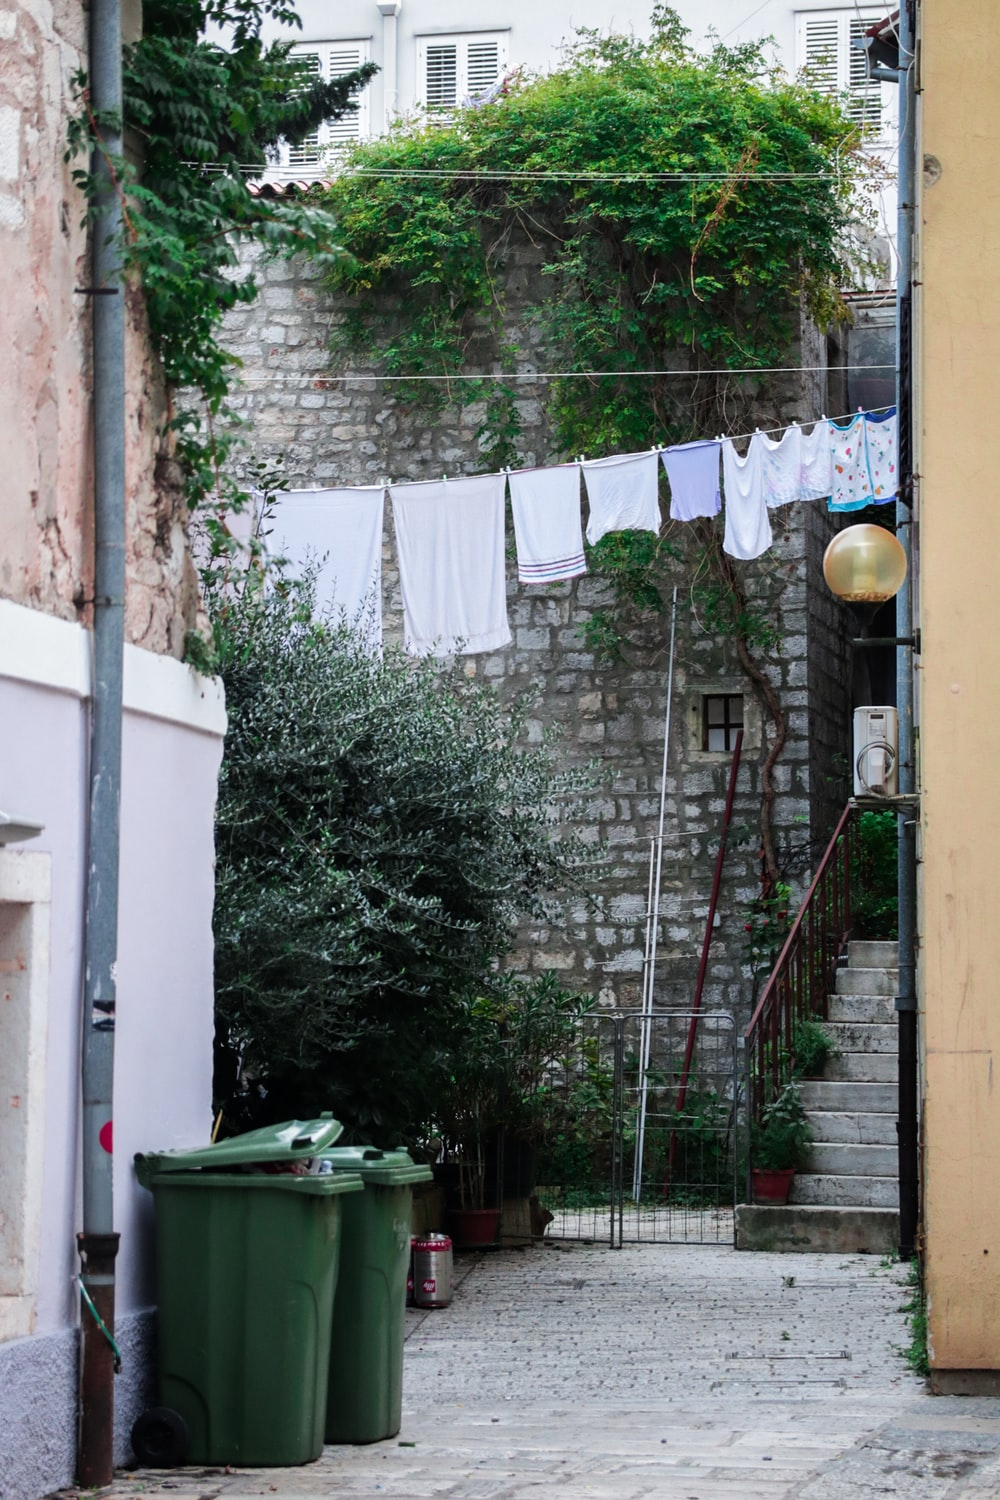 hung clothes near buildings and trash containers